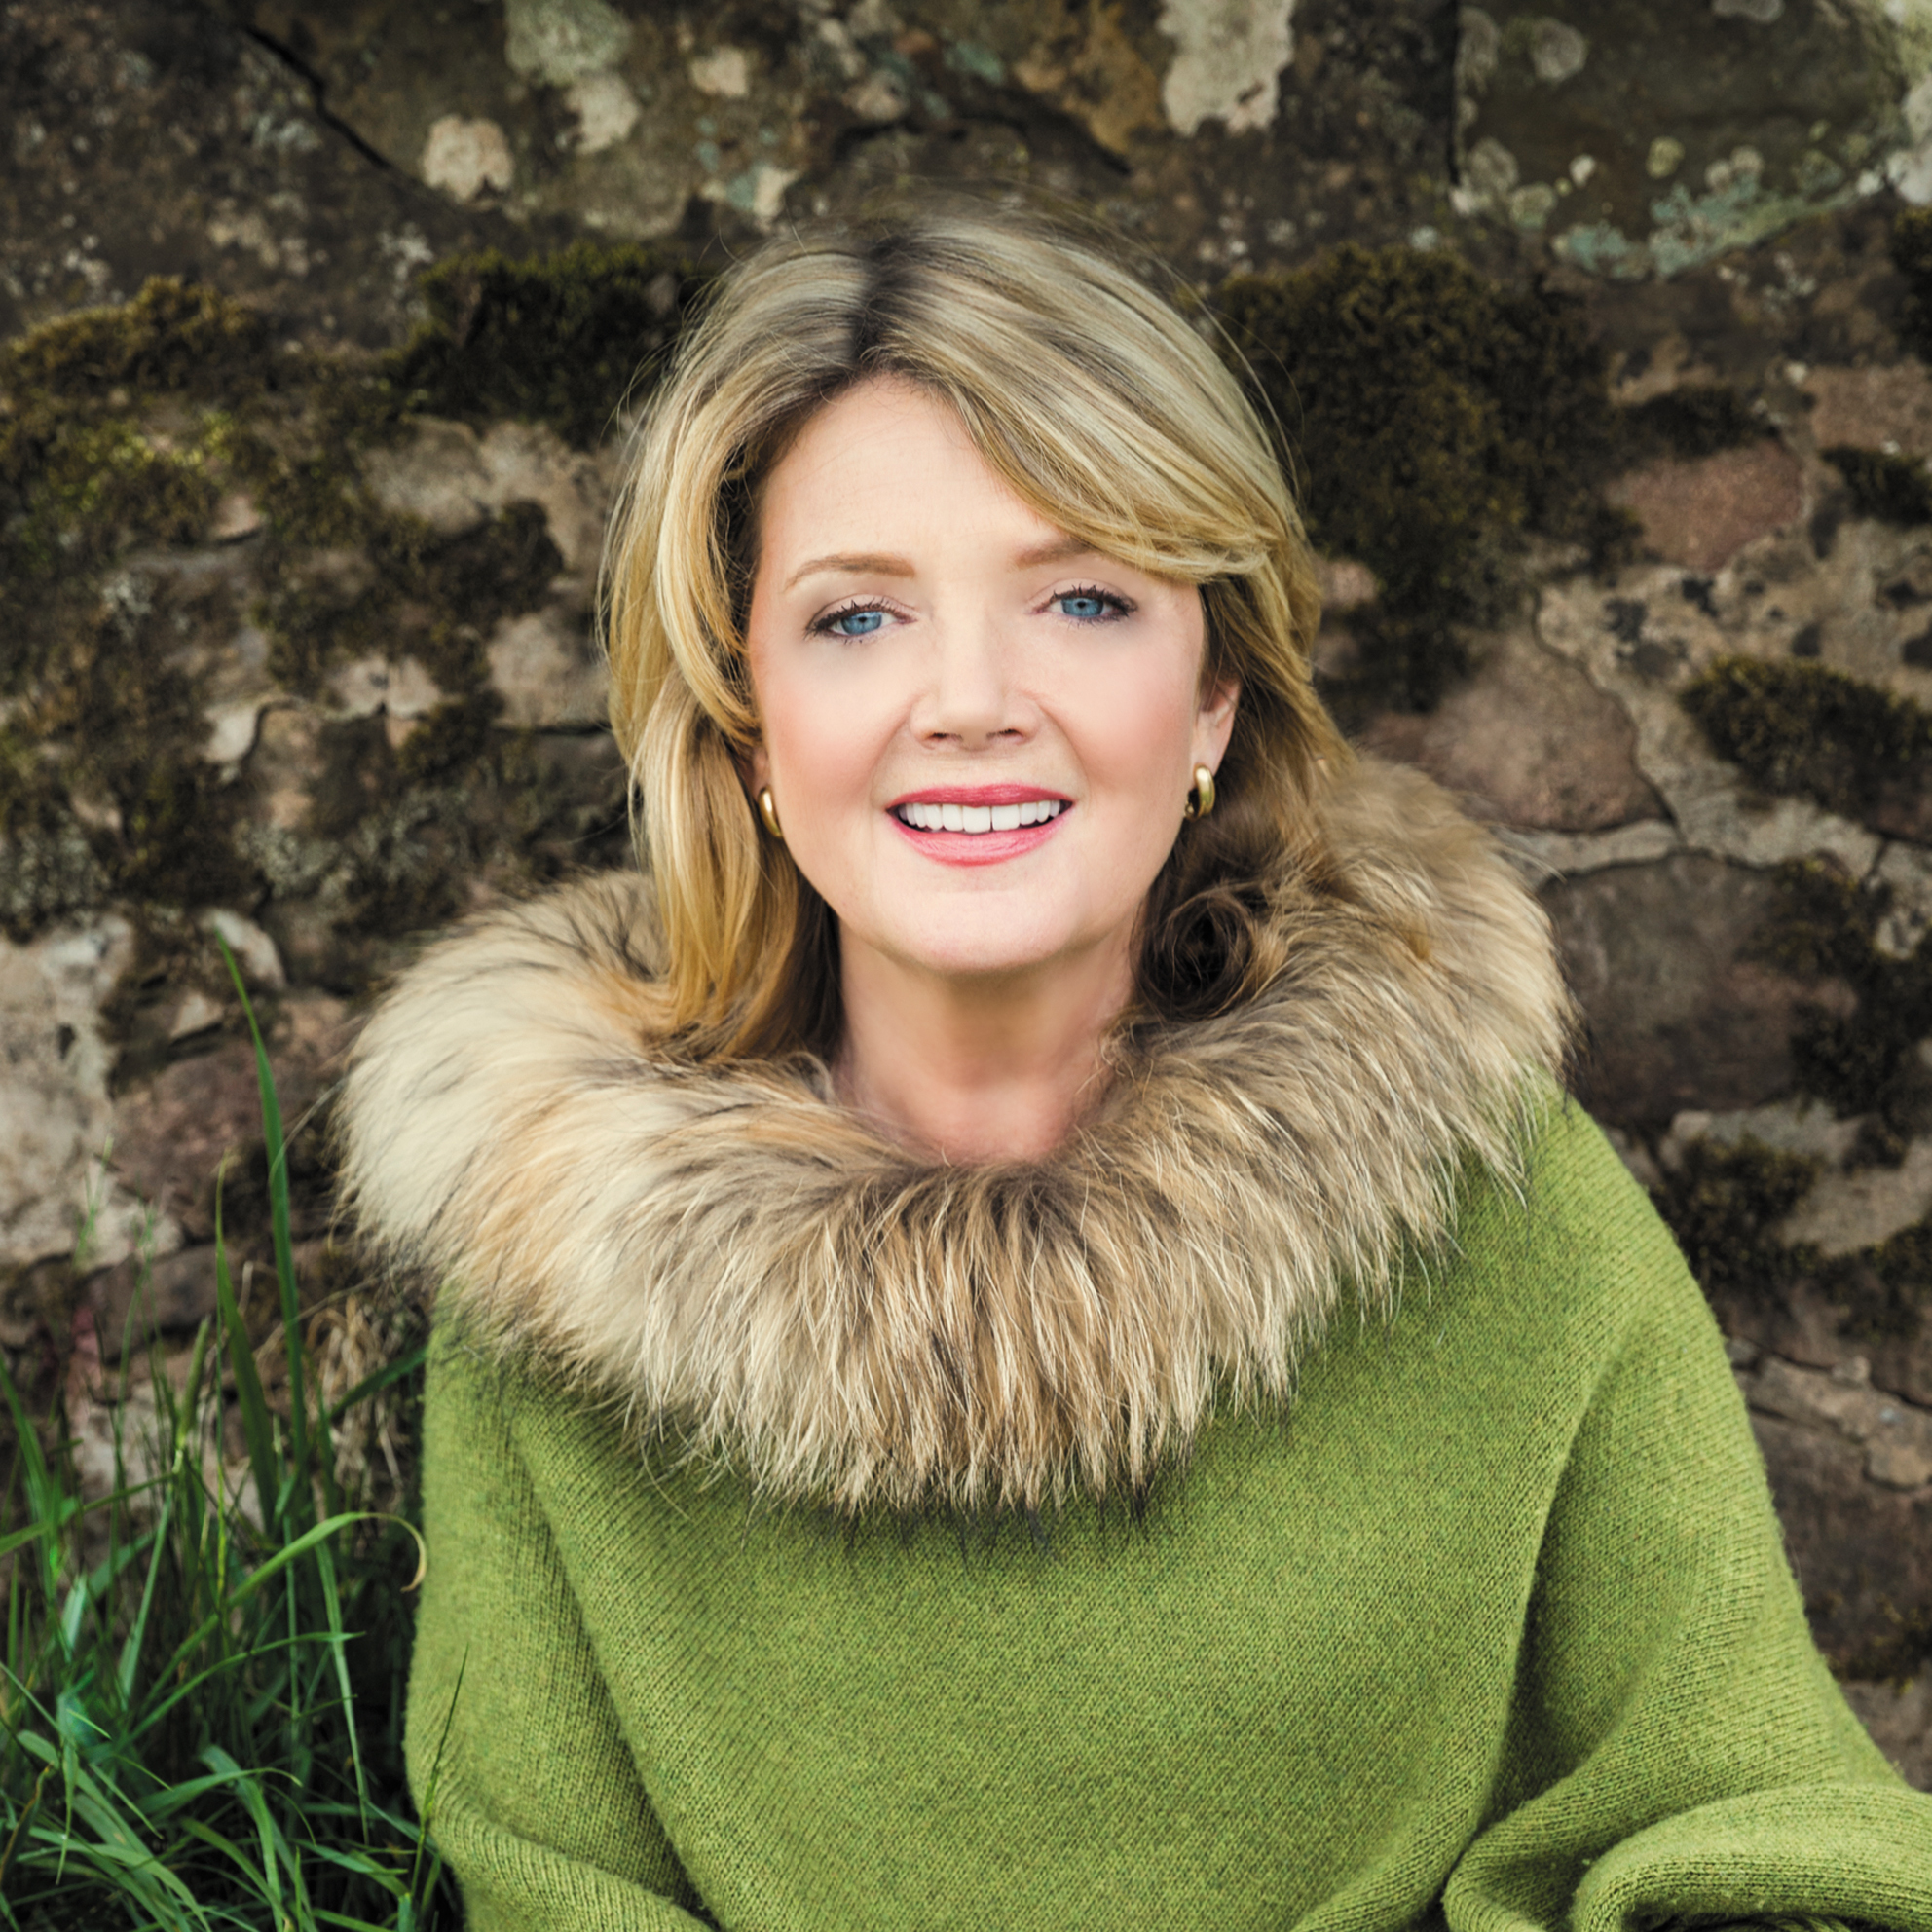 Fiona Kennedy will be performing on the night in aid of Cancer Research